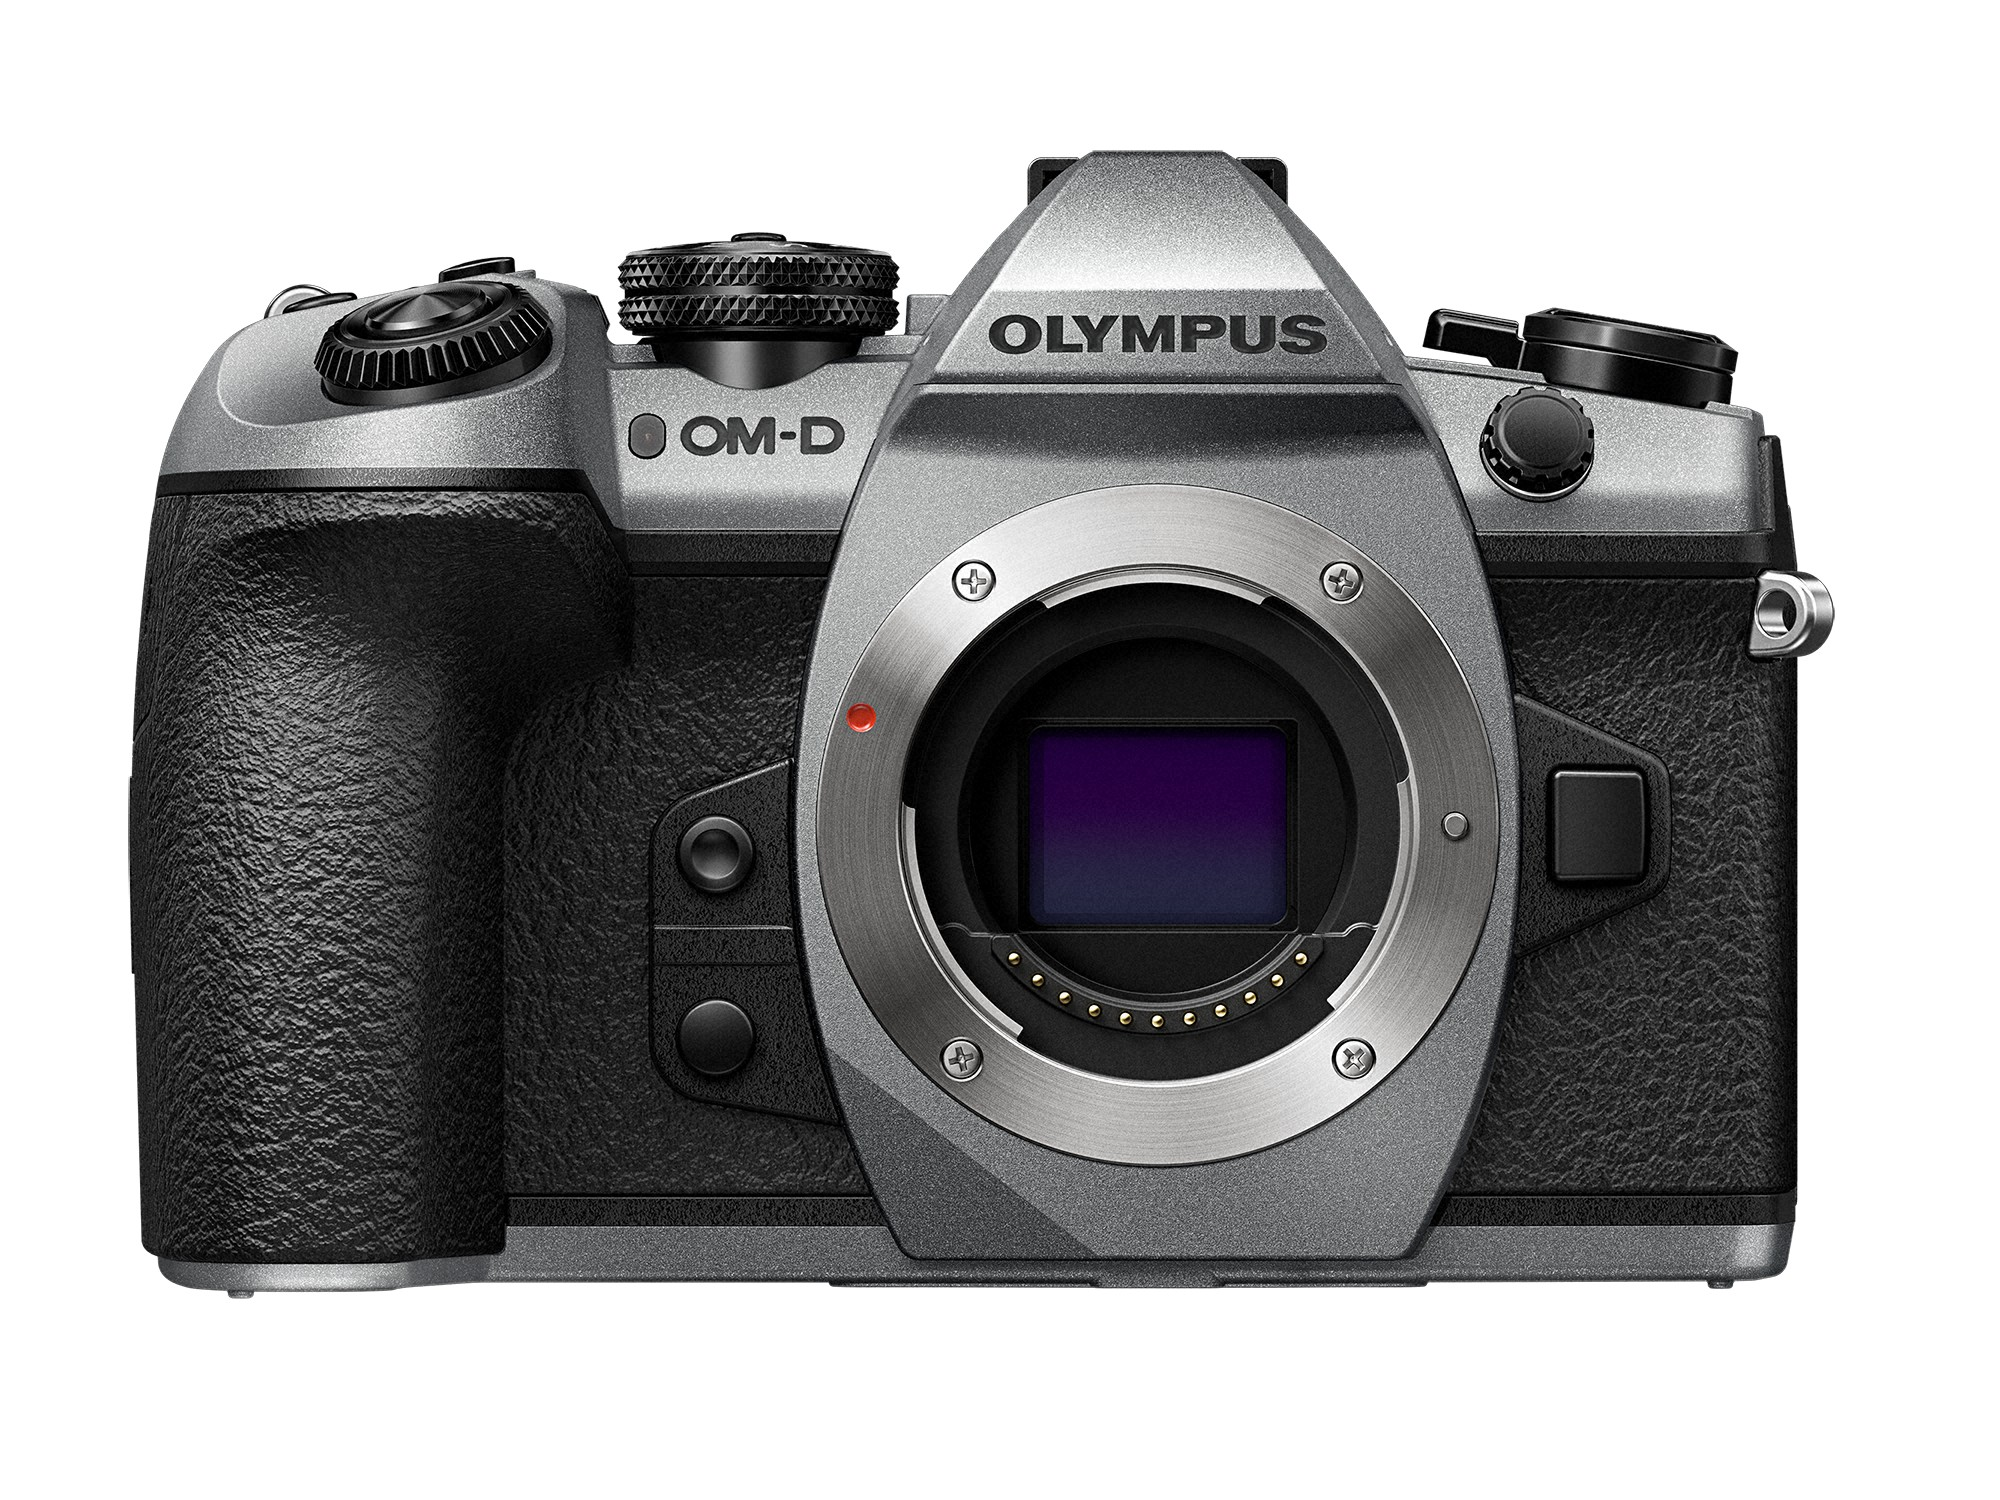 Olympus announces limited edition OM-D E-M1 Mark II camera